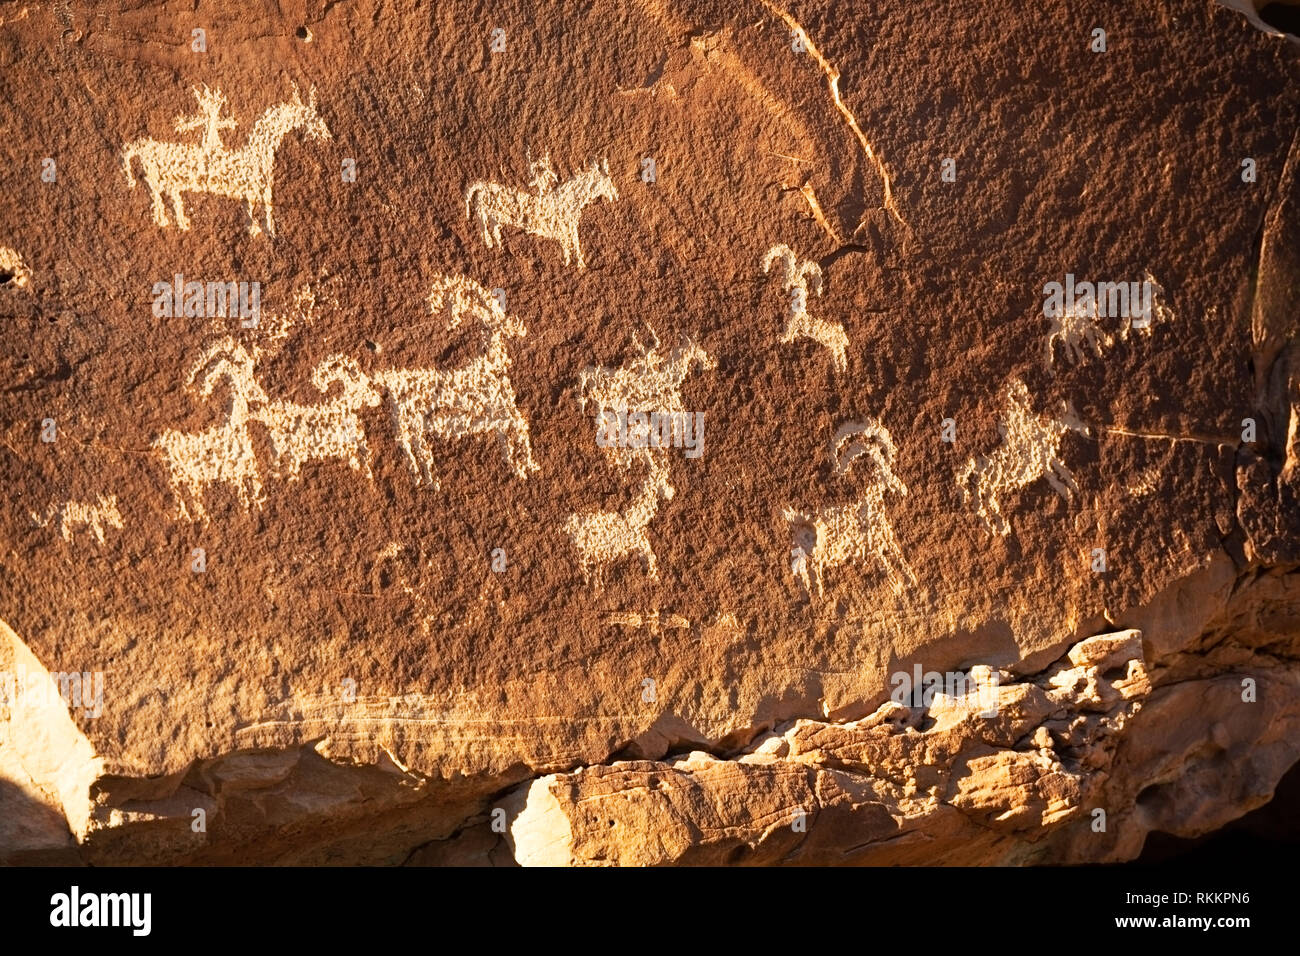 Native American Ute Indian petroglyphs near Wolfe Ranch and Delicate Arch, Arches National Park, Utah, America - Stock Image